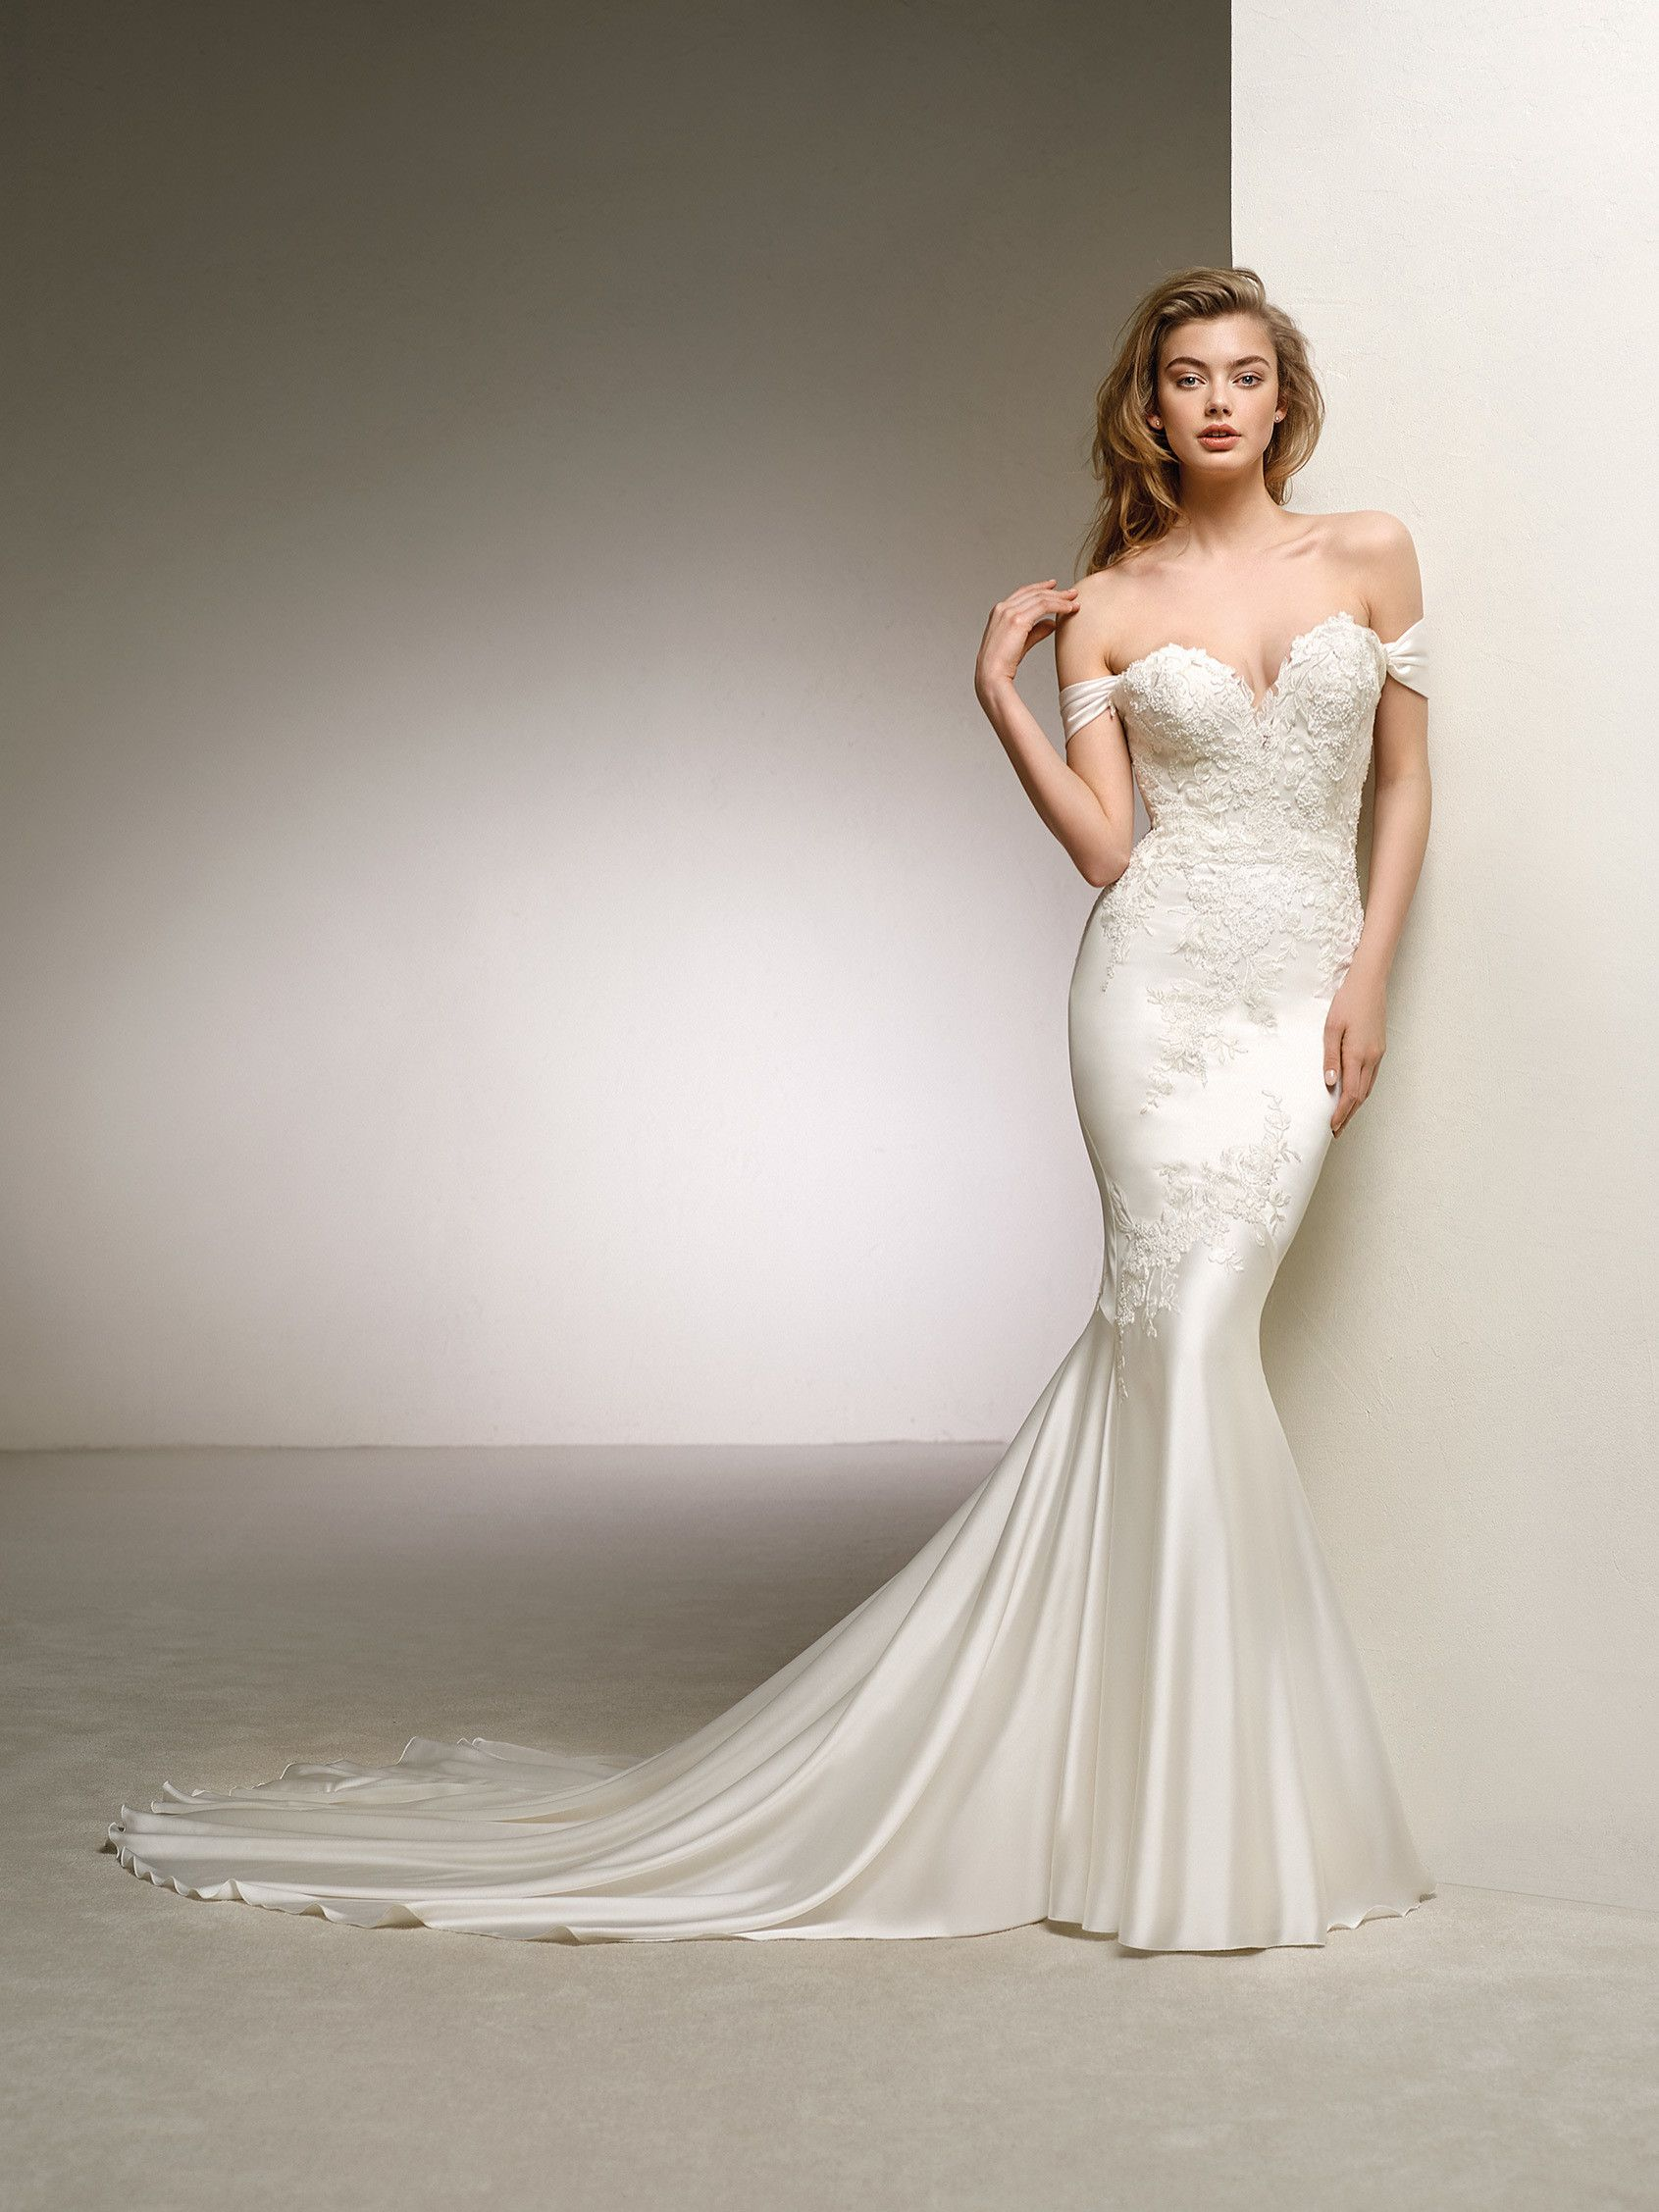 25dace897c54 Pronovias 2018 Style DANTE Glowing Silk-Satin mermaid gown with a  spectecular lace design. The sweetheart neckline contrasts with the  detachable draped ...